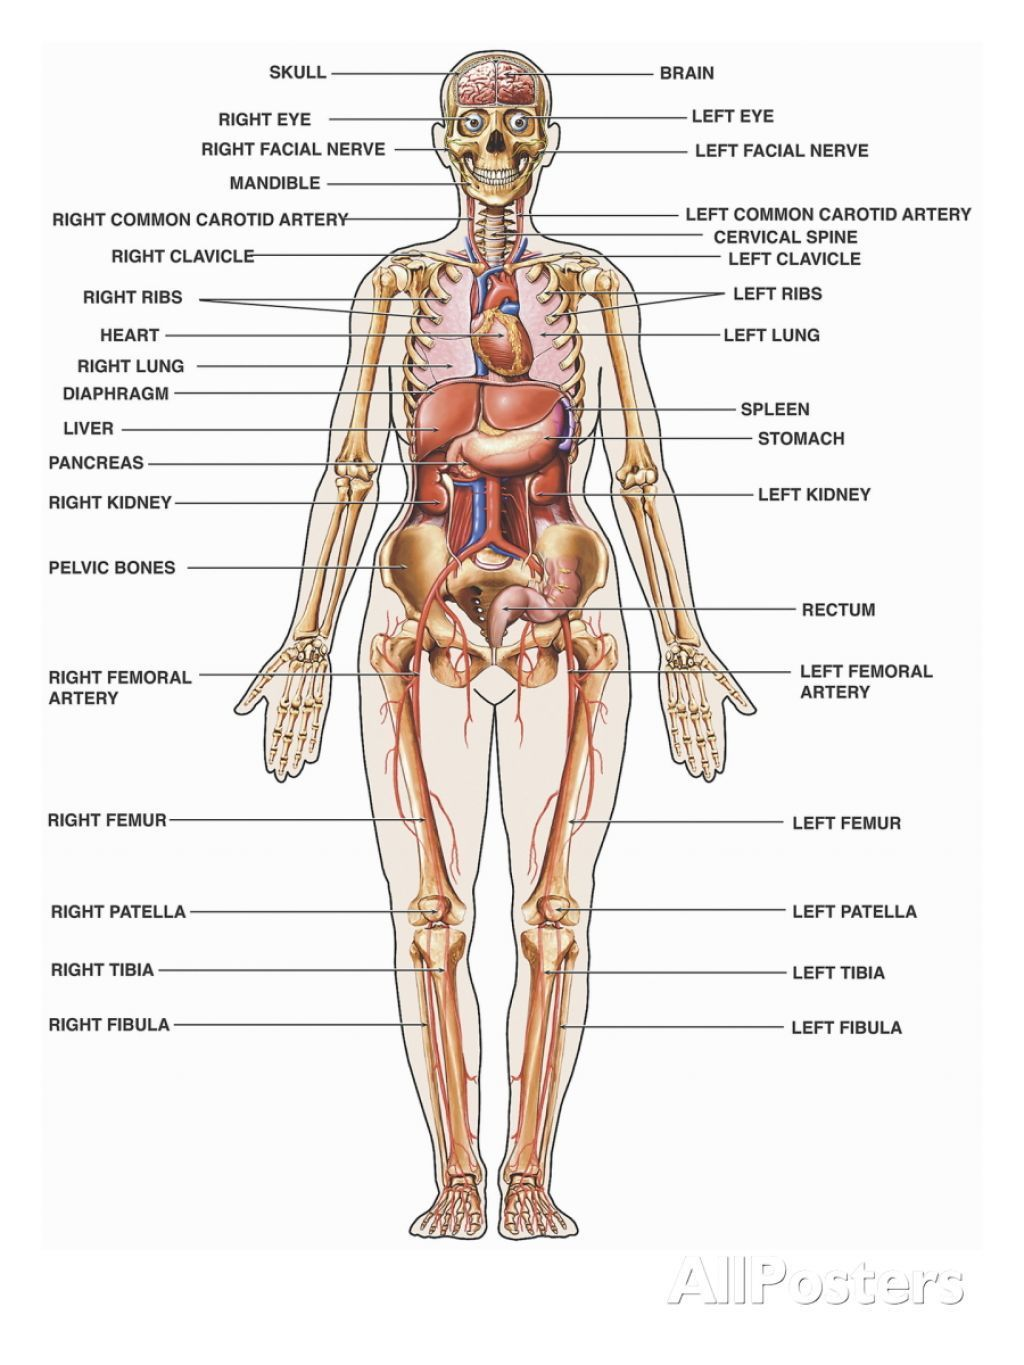 Pictures Of The Human Anatomy Human Anatomy Organs Human Body